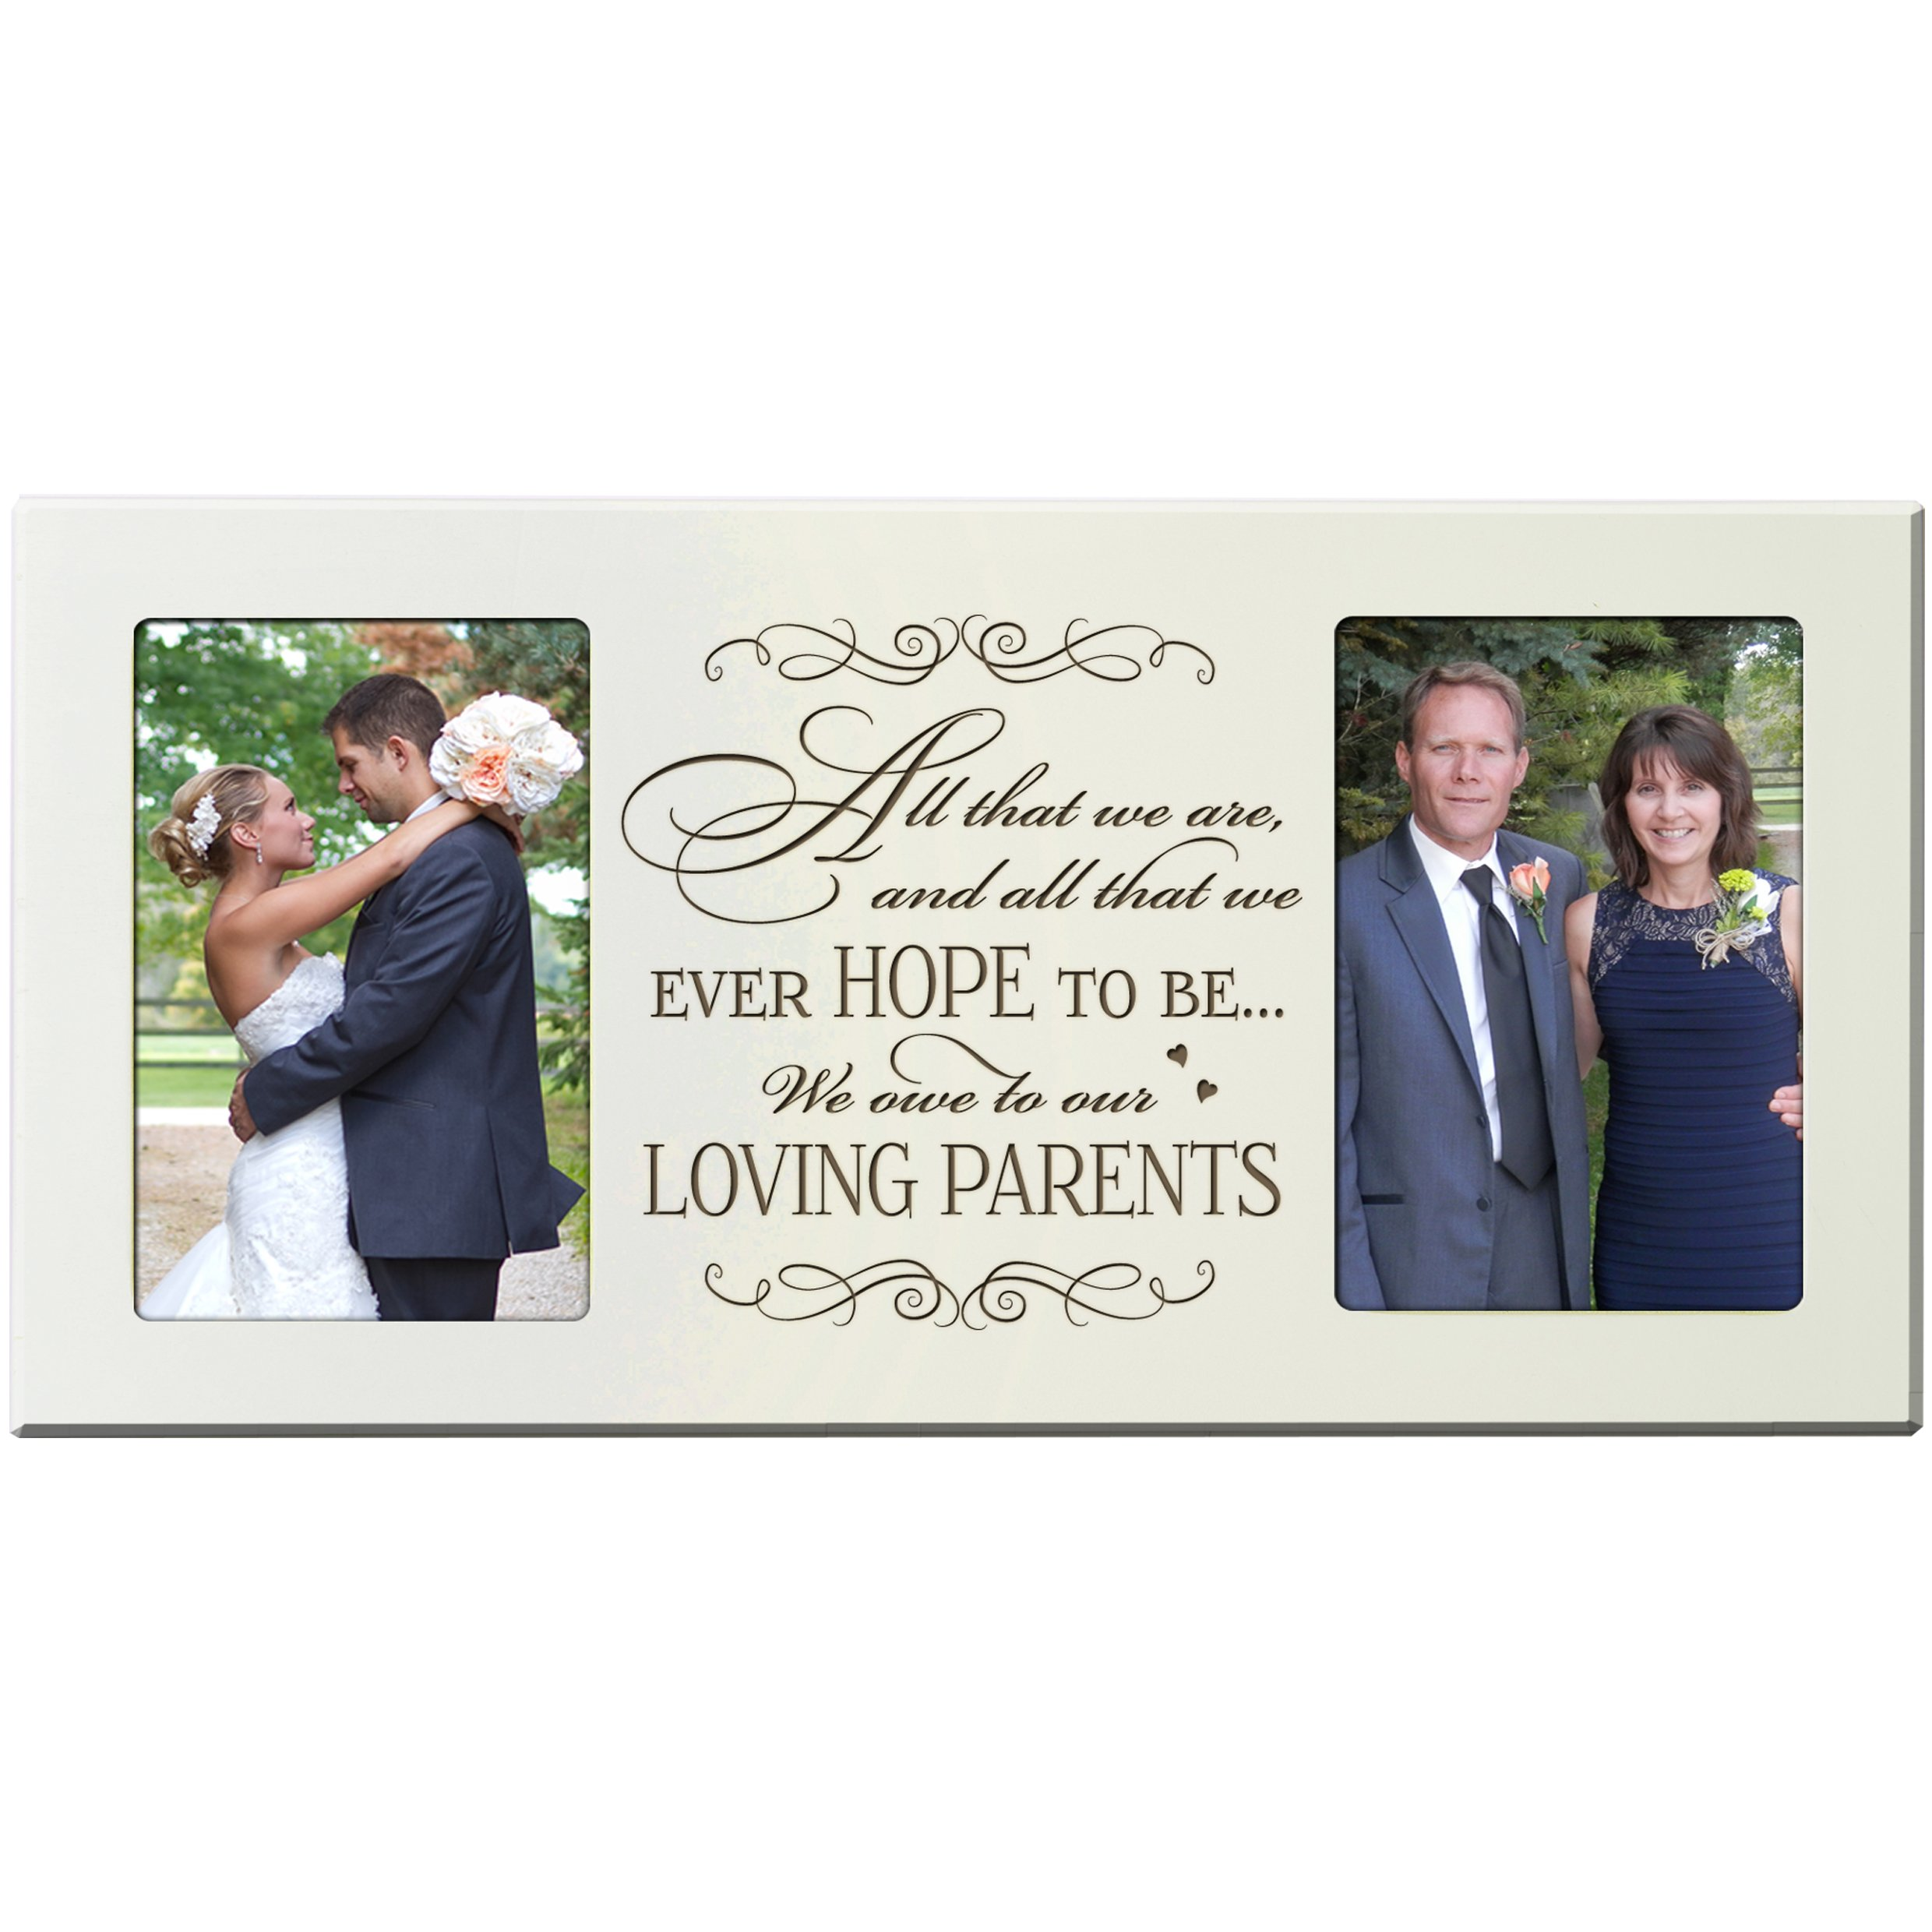 LifeSong Milestones Parent Wedding Gift Photo Frame for parents, Mom and Dad thank-you gift 16'' l x 8'' h holds 2 4x6 photos Exclusively from (Ivory)